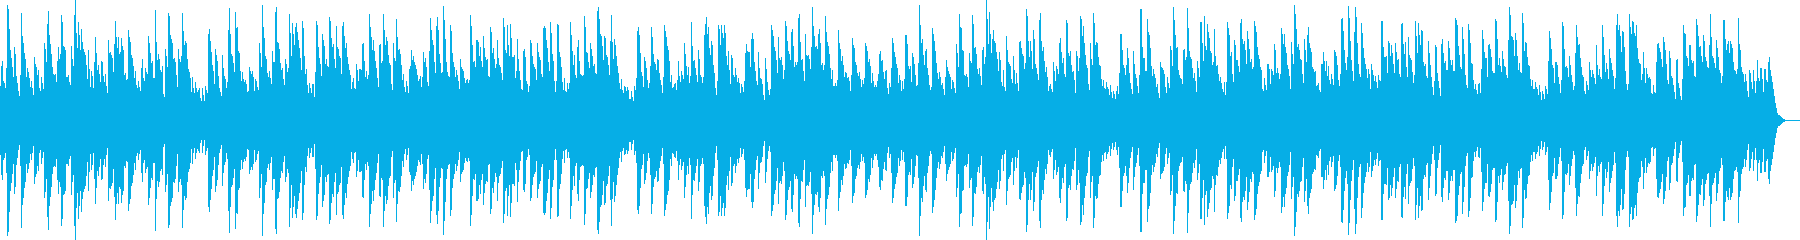 Danny Boy (music box)'s reproduced waveform